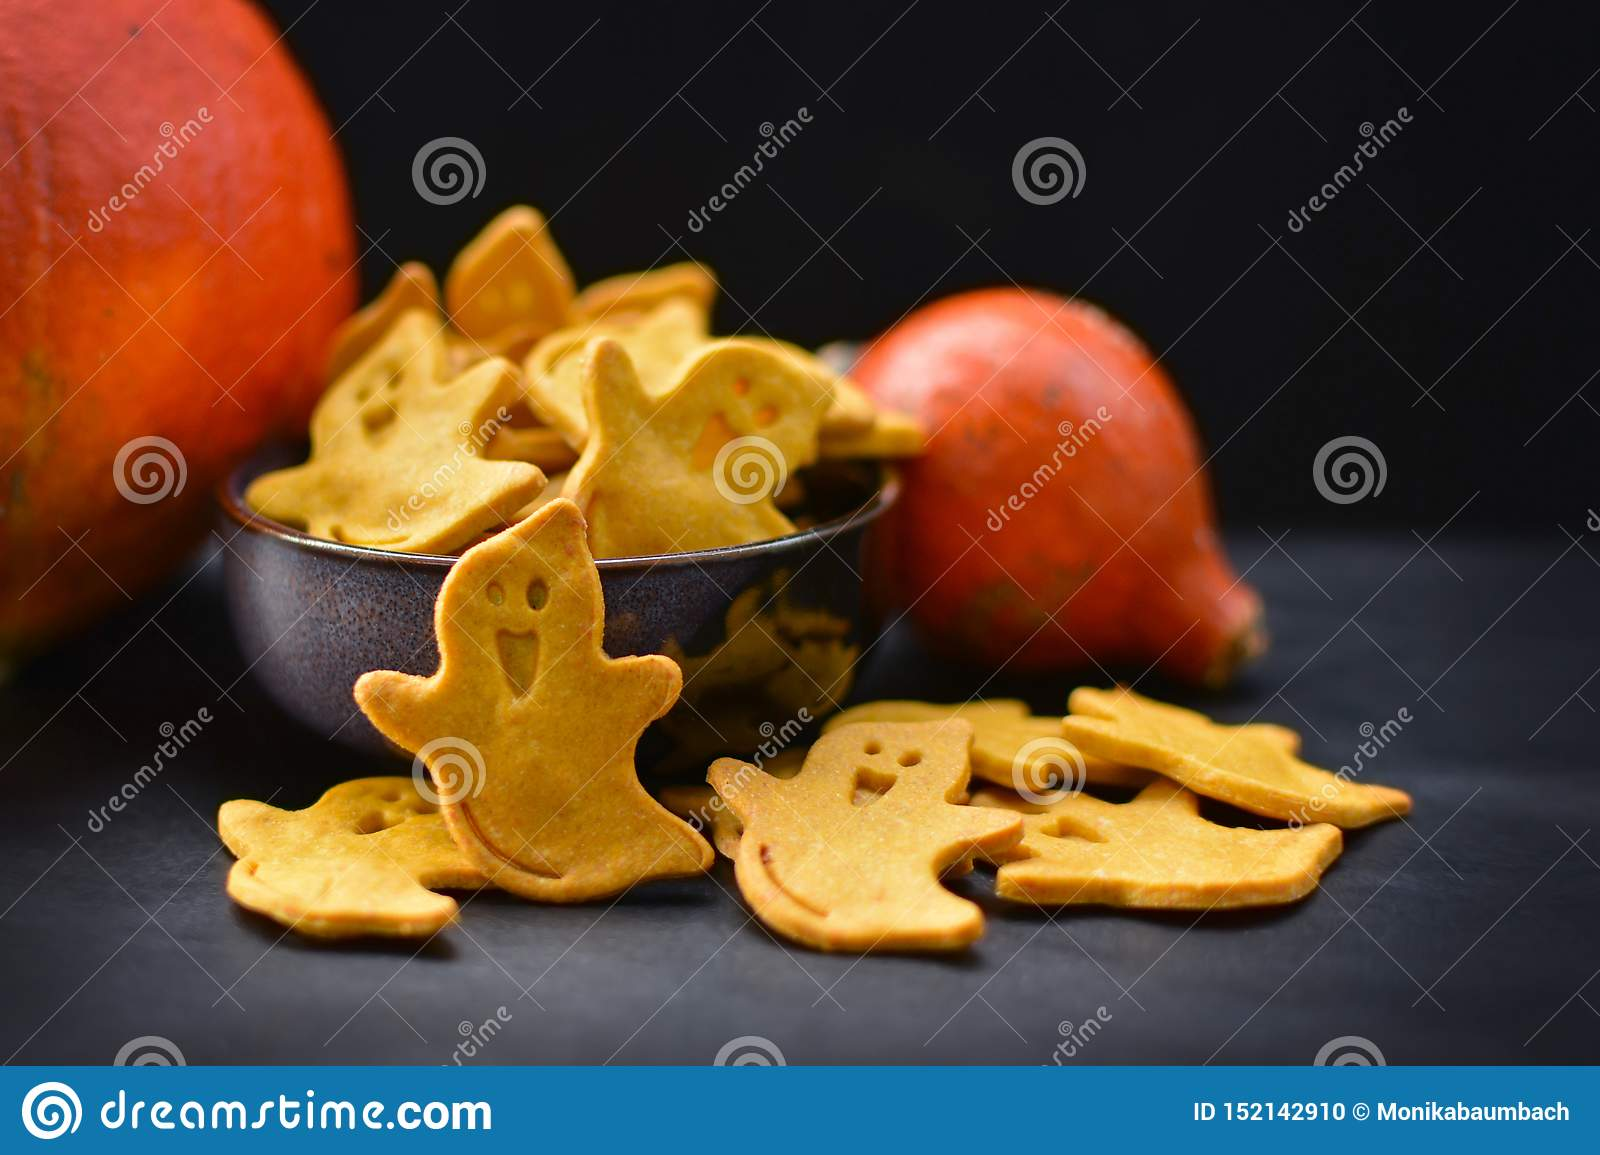 Yellow spooky ghost shaped Halloween cookies with orange pumpkins on dark background